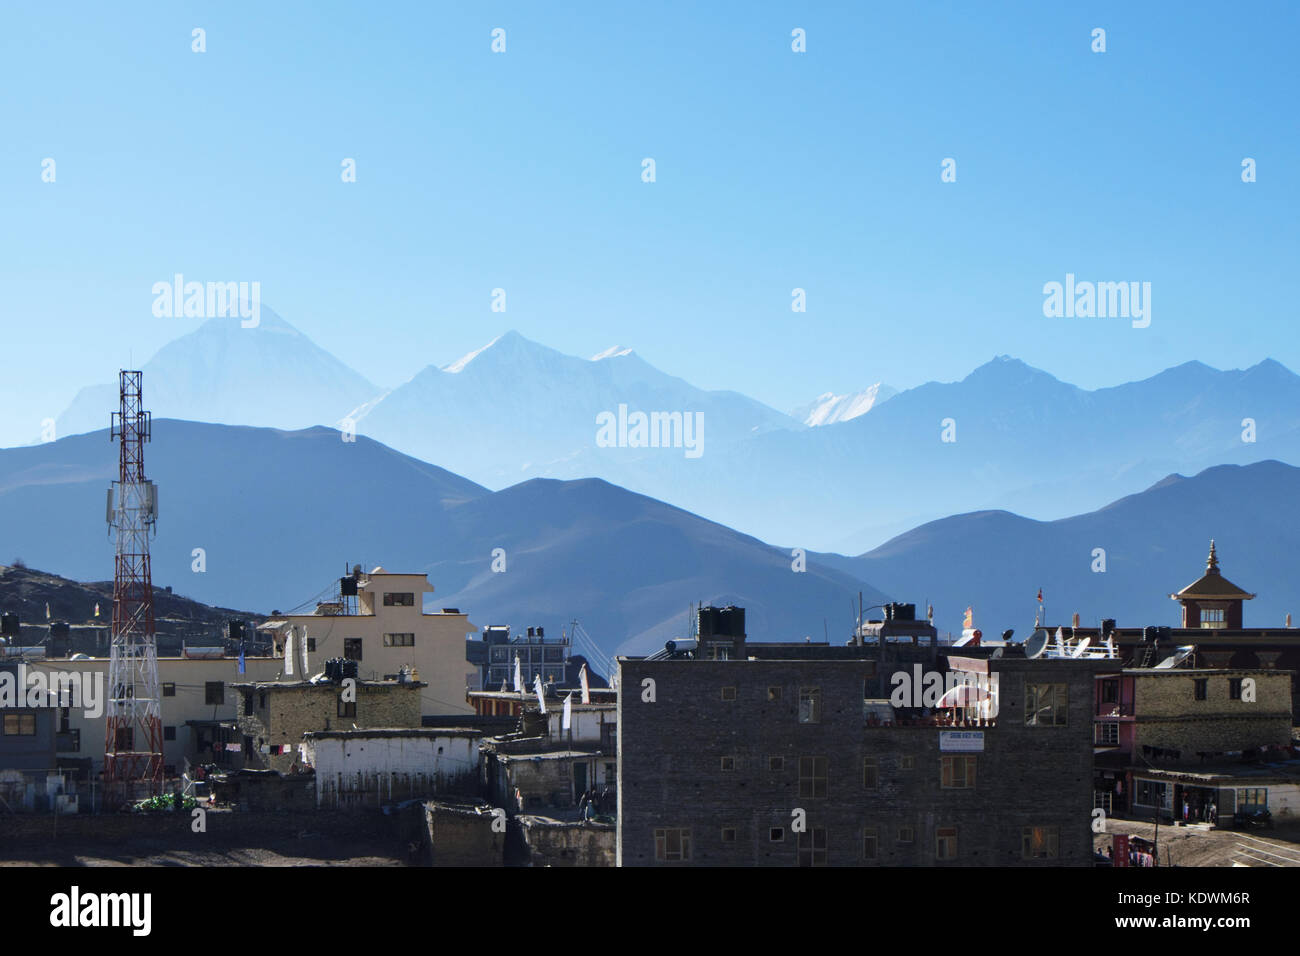 NEPAL. MUKTINATH - NOVEMBER 18, 2016 : View of Muktinath in the background of the silhouette of the Himalayas and - Stock Image